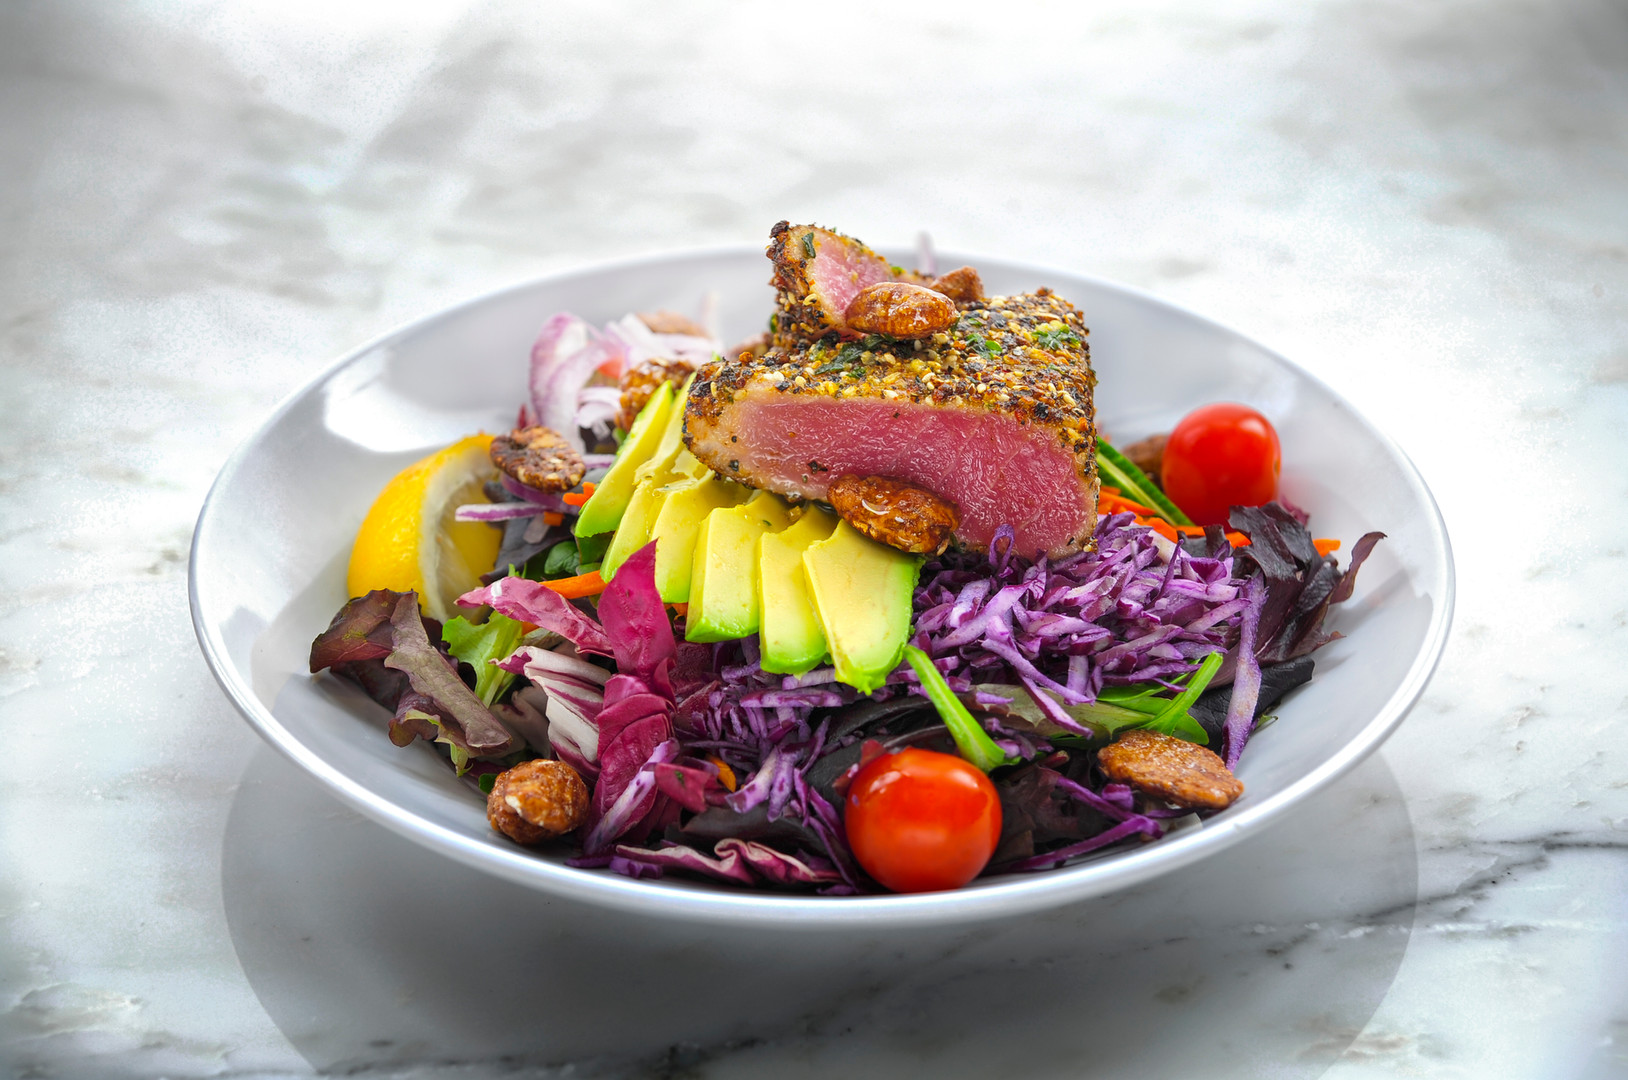 Seared Ahi Tuna salad2.jpg